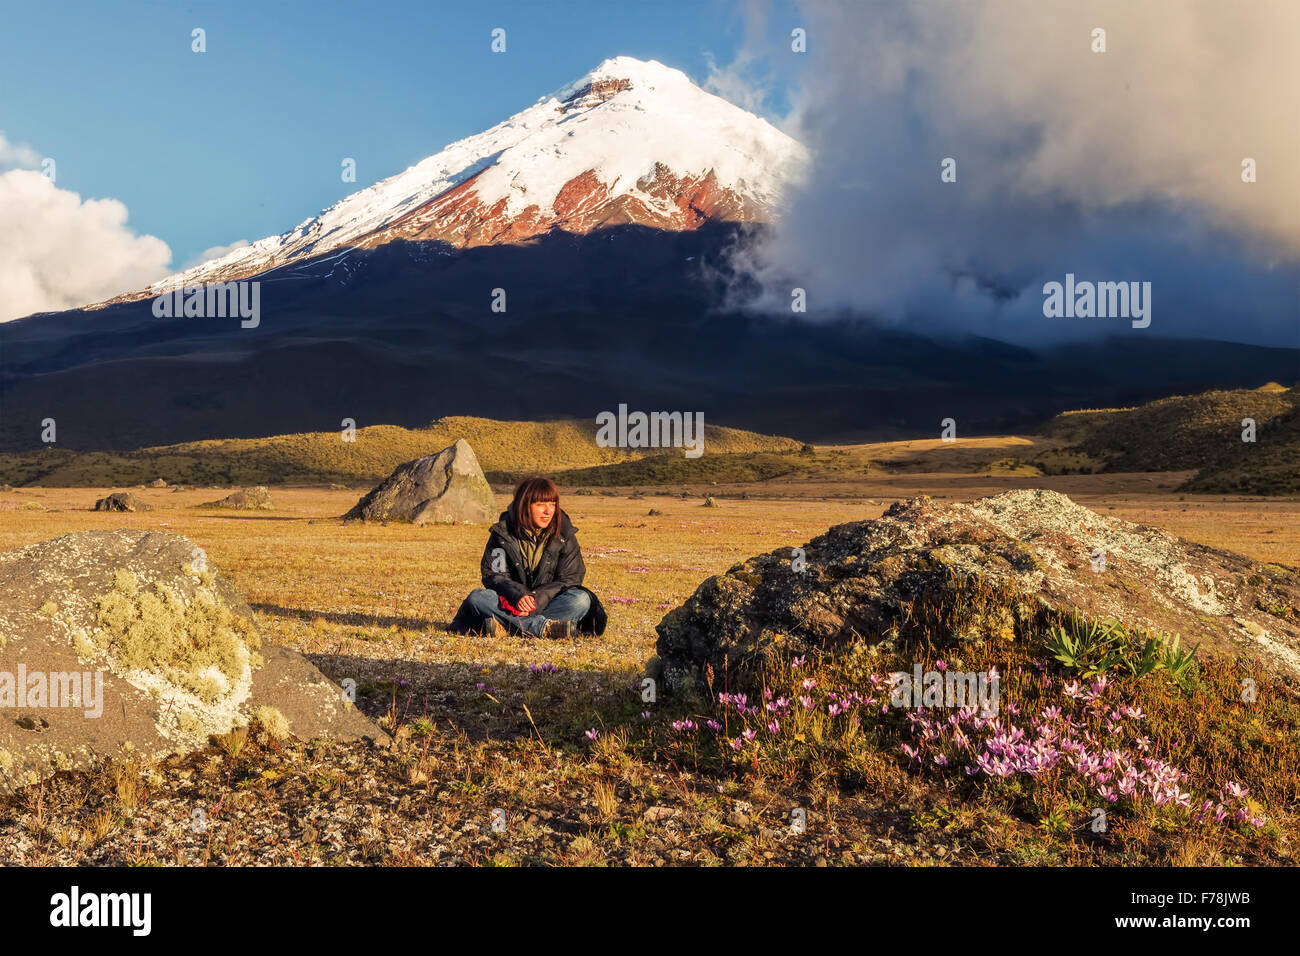 Young Volcanologist At The Foot Of Cotopaxi Volcano, South America - Stock Image